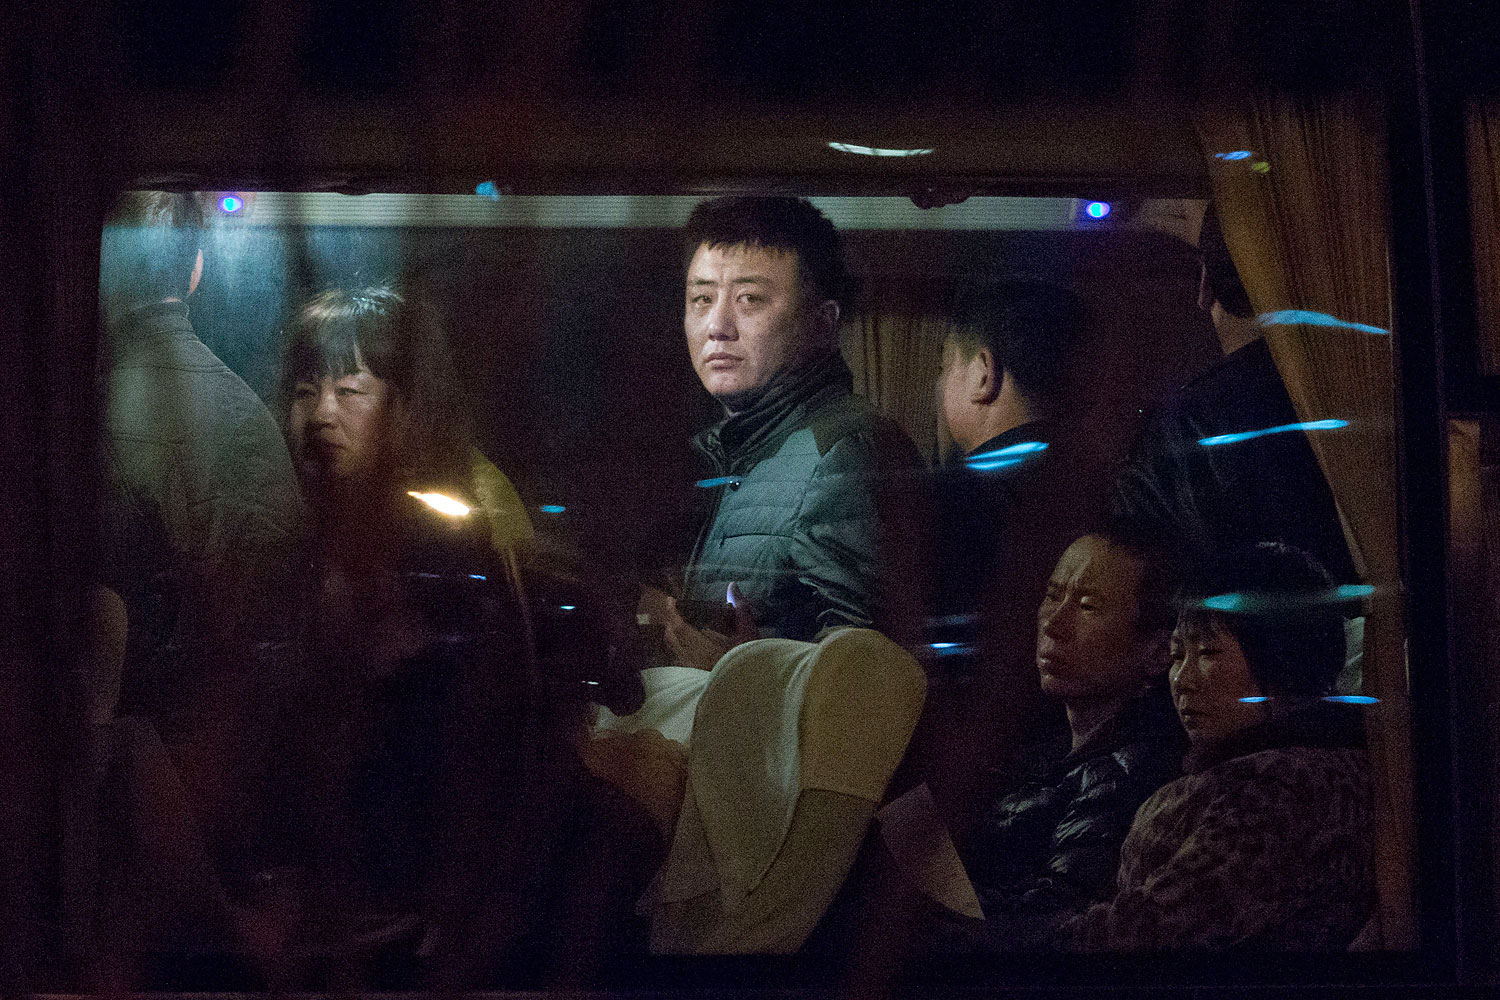 Relatives of Chinese passengers aboard a missing Malaysia Airlines plane wait on a bus in Beijing on March 9, 2014, to get paperwork to fly to Malaysia